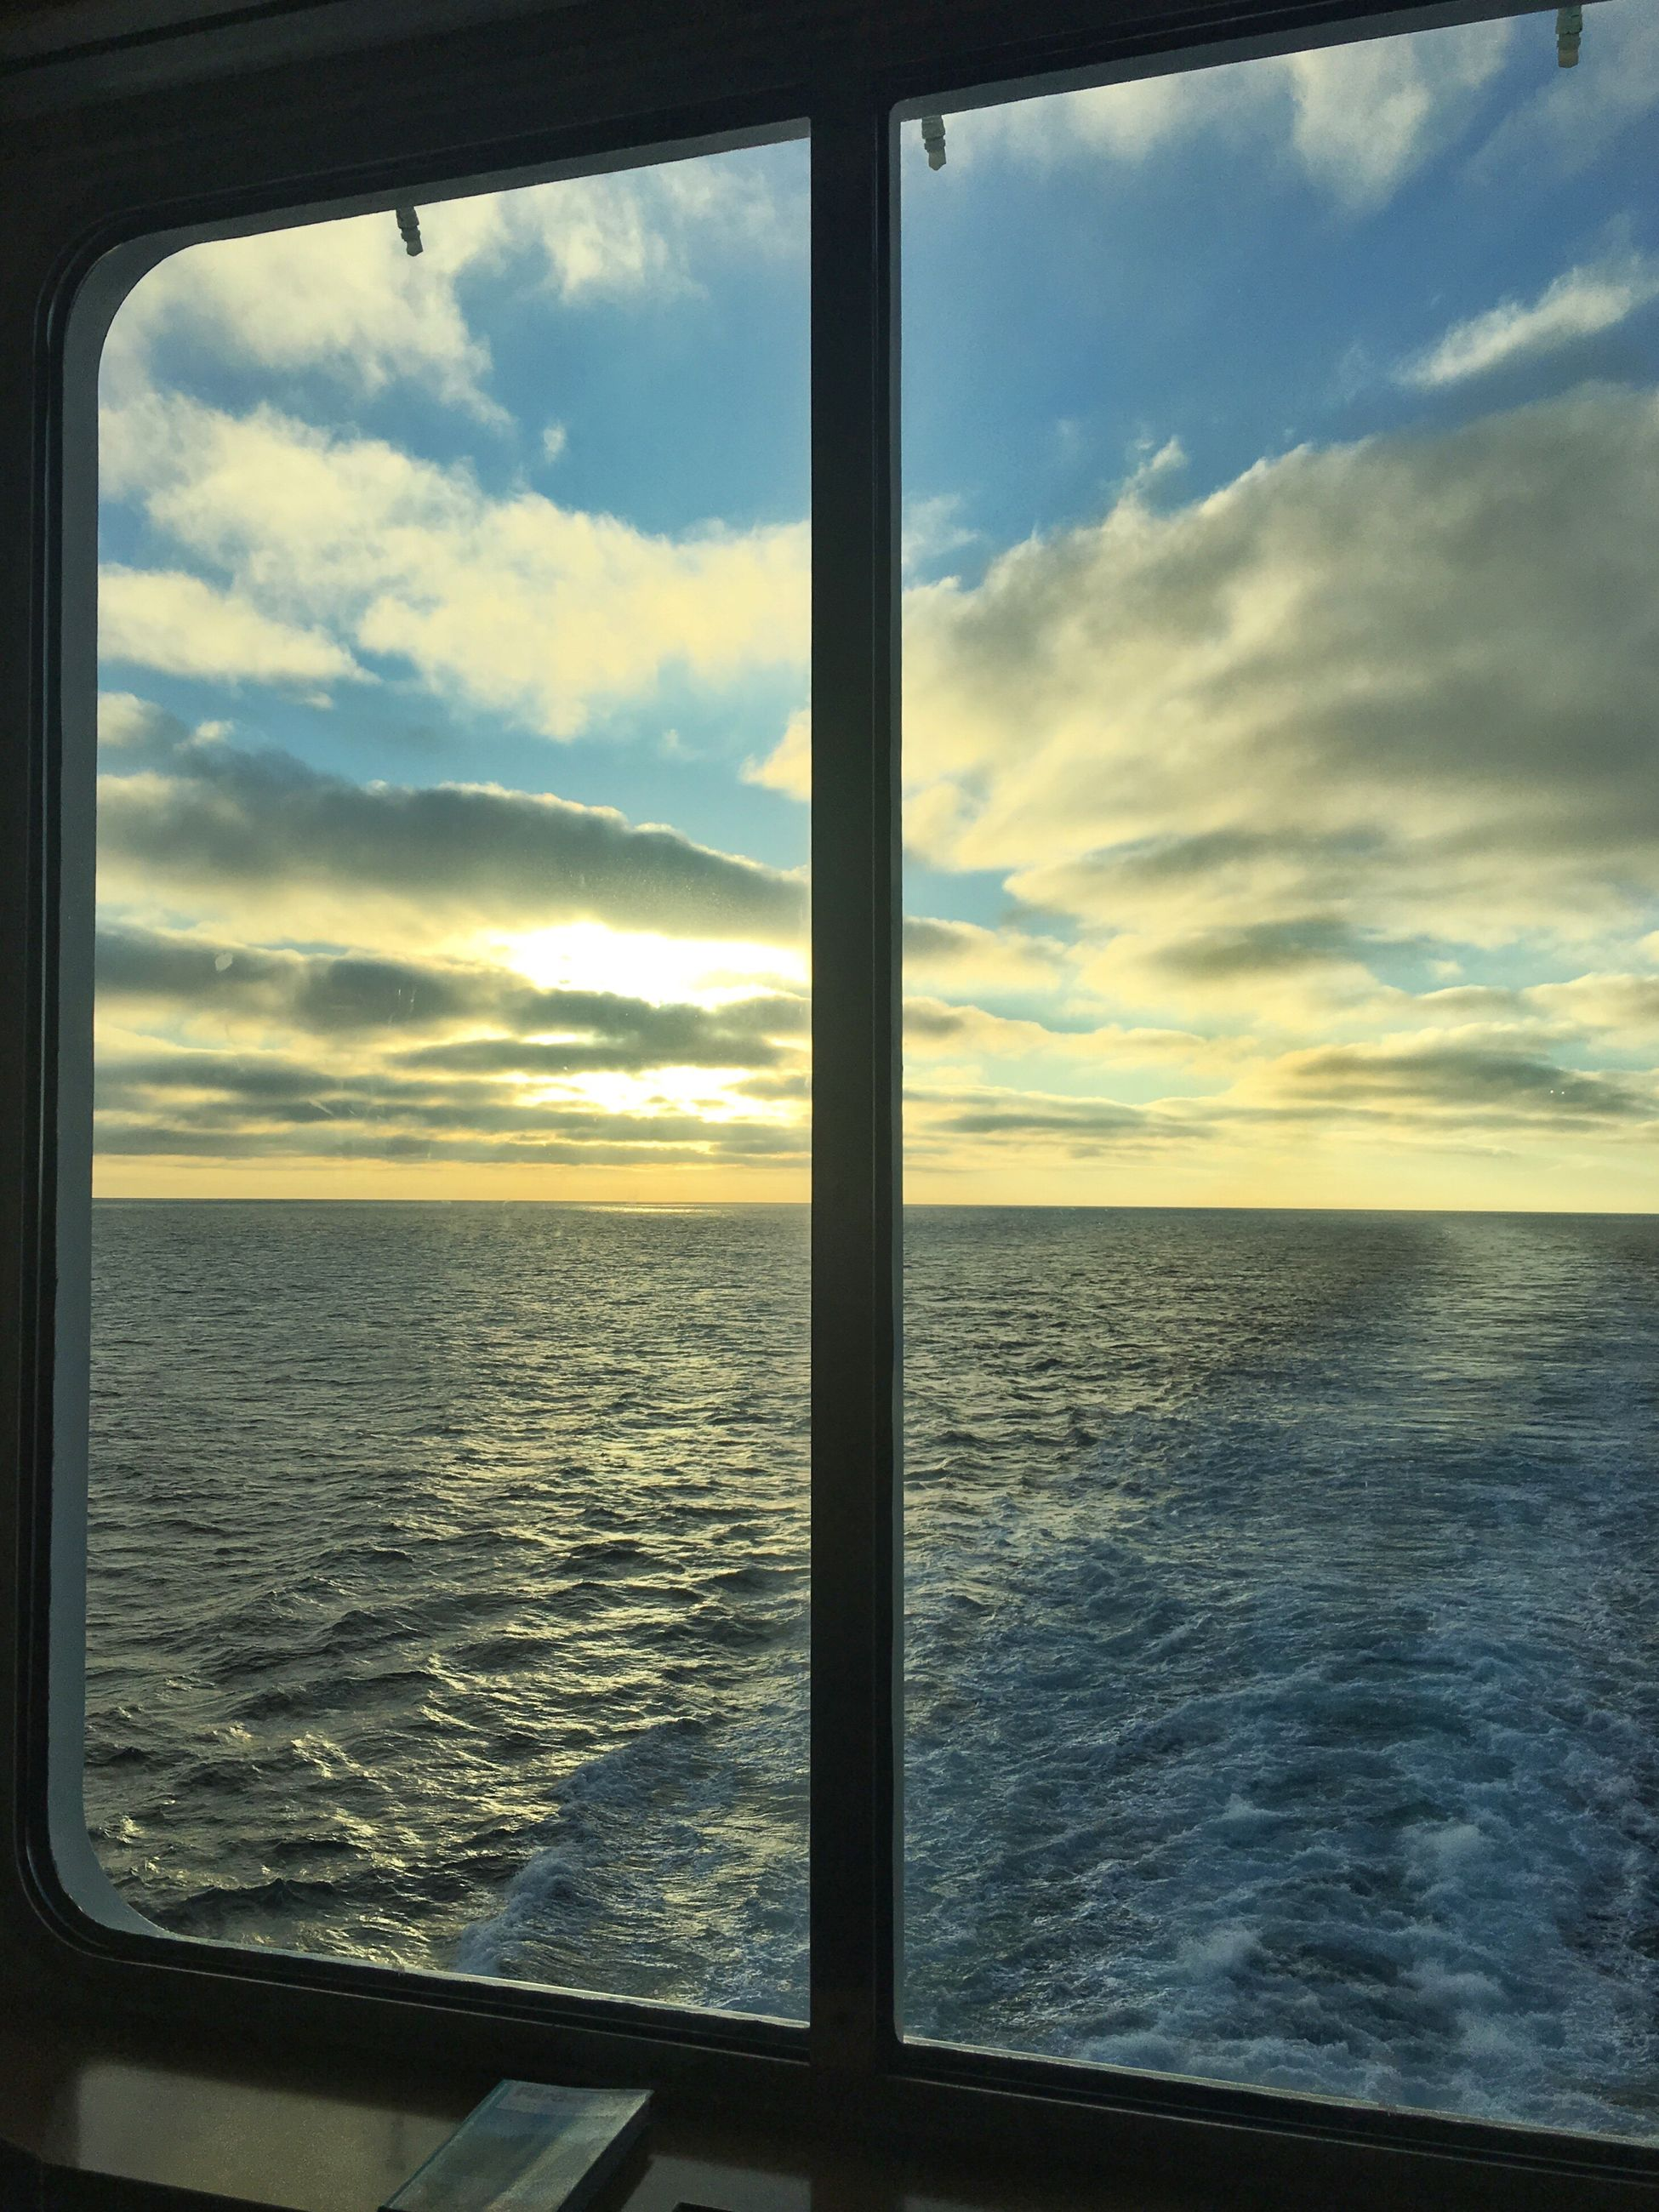 window, water, transportation, sea, scenics, mode of transport, sky, vehicle interior, travel, sunset, nautical vessel, glass - material, tranquil scene, transparent, sun, cloud - sky, tranquility, journey, cloud, beauty in nature, tourism, travel destinations, vacations, nature, atmospheric mood, dramatic sky, cloudscape, back lit, seascape